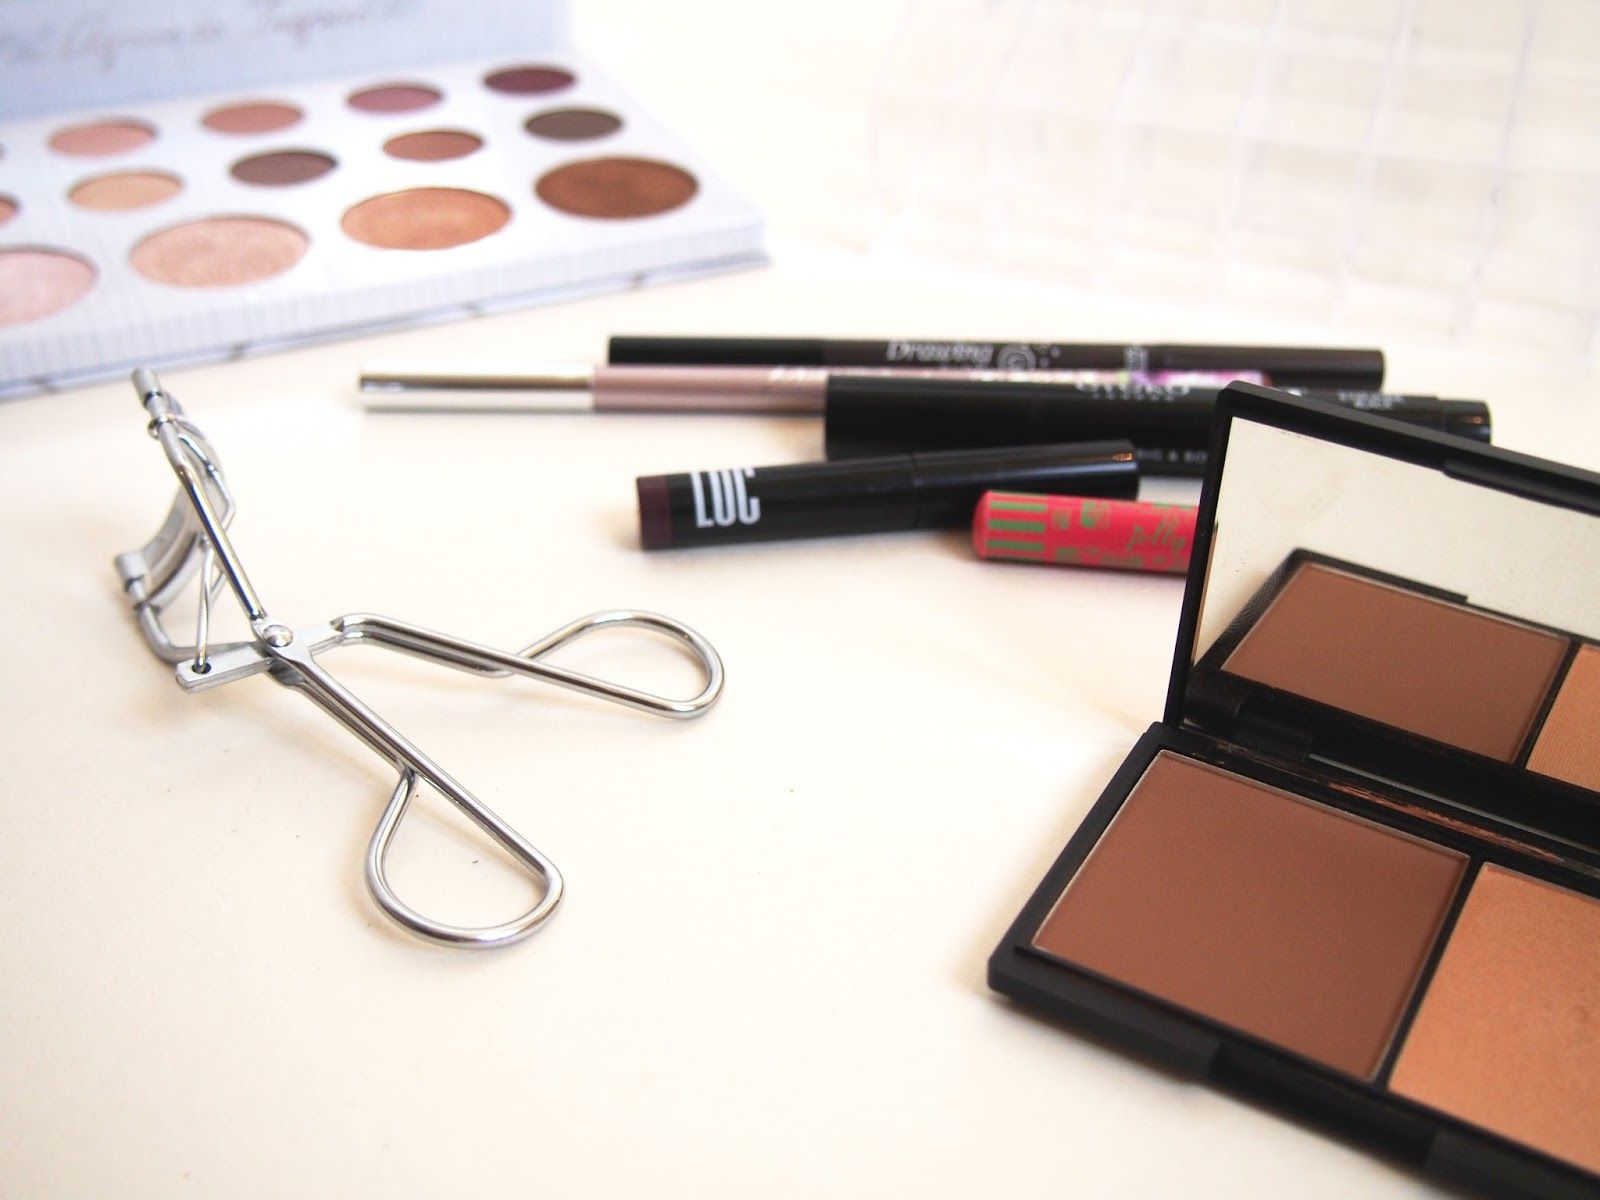 A So Called Beauty Blog: NEW IN: Makeup, Storage & More